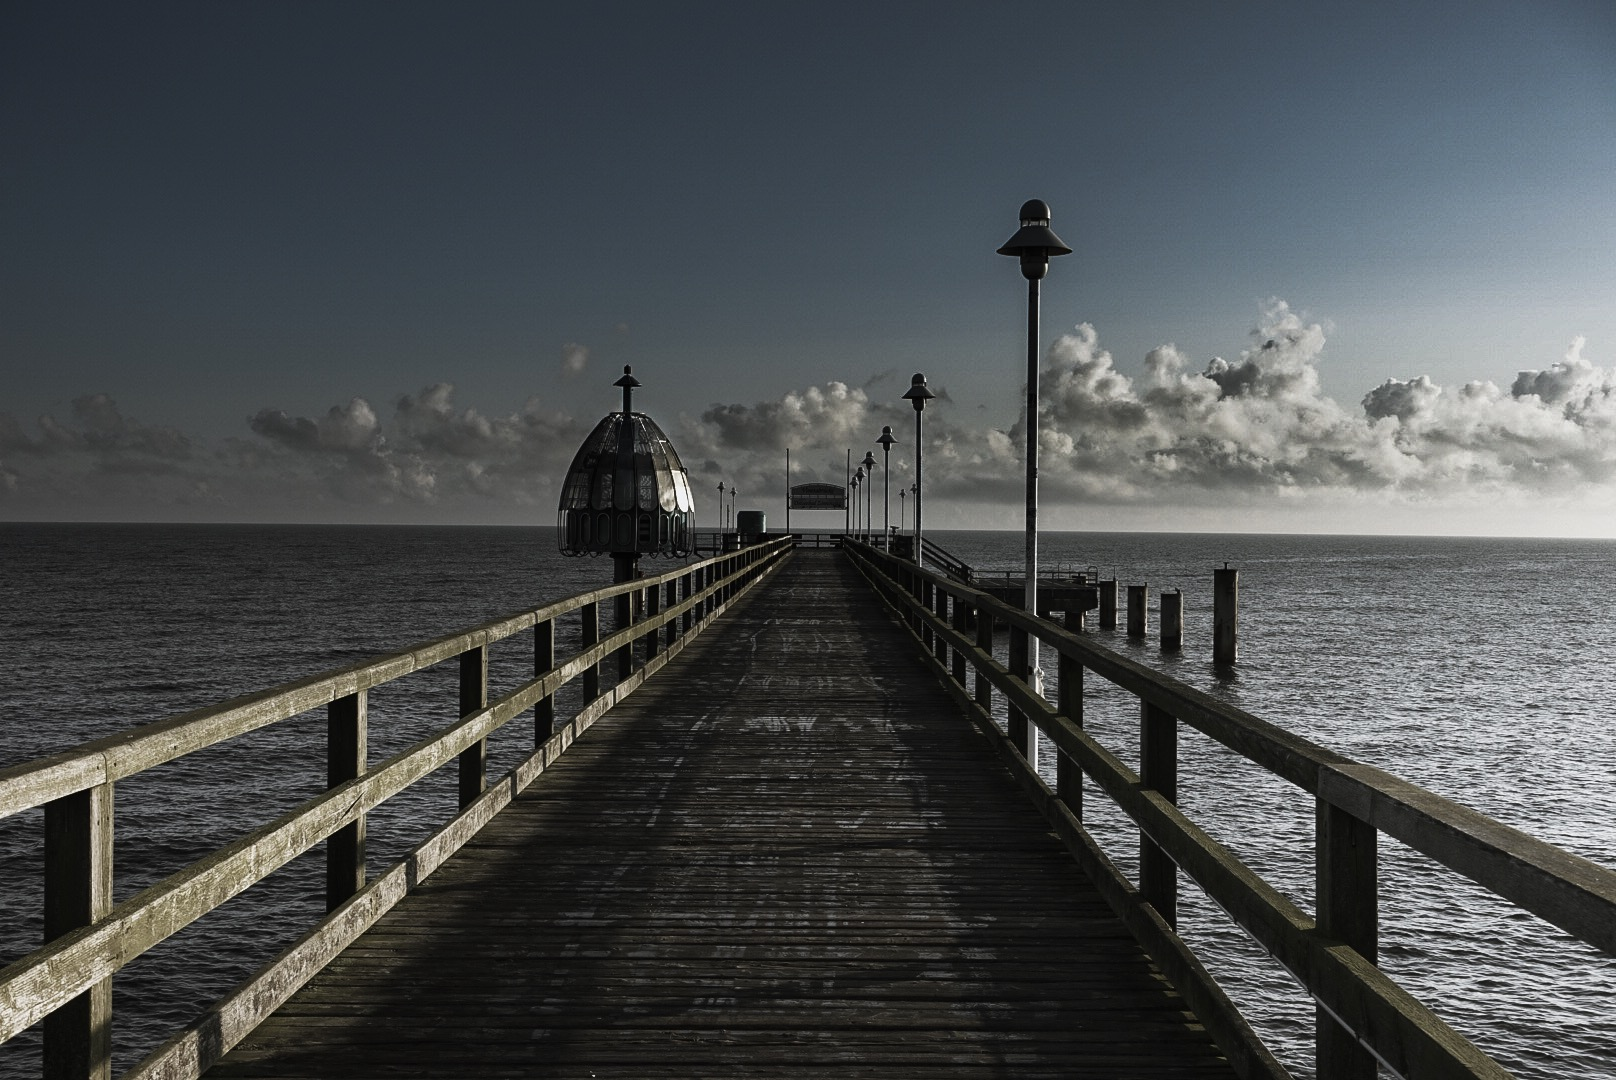 Pier in the morning, Germany